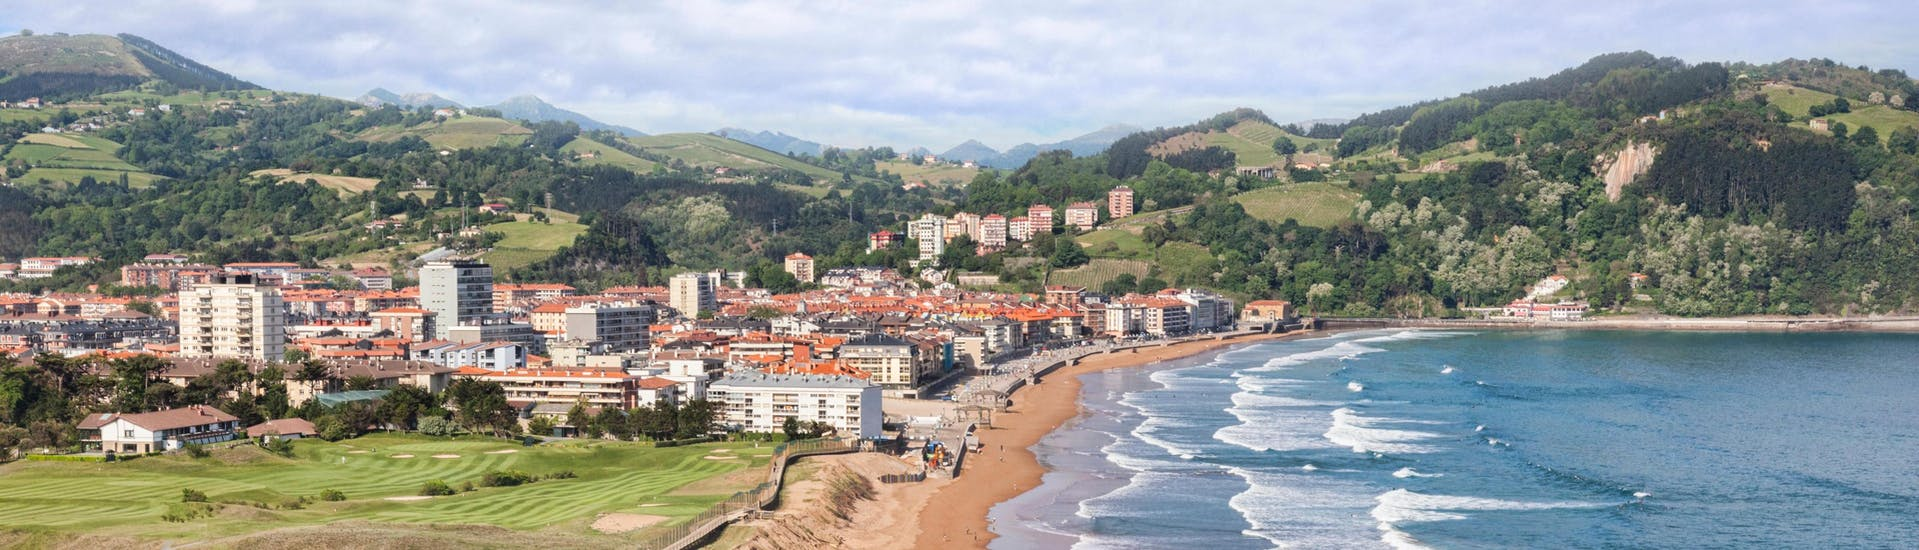 An aerial view of the beach in Zarautz, a popular place to go surfing in the Basque Country in Spain.